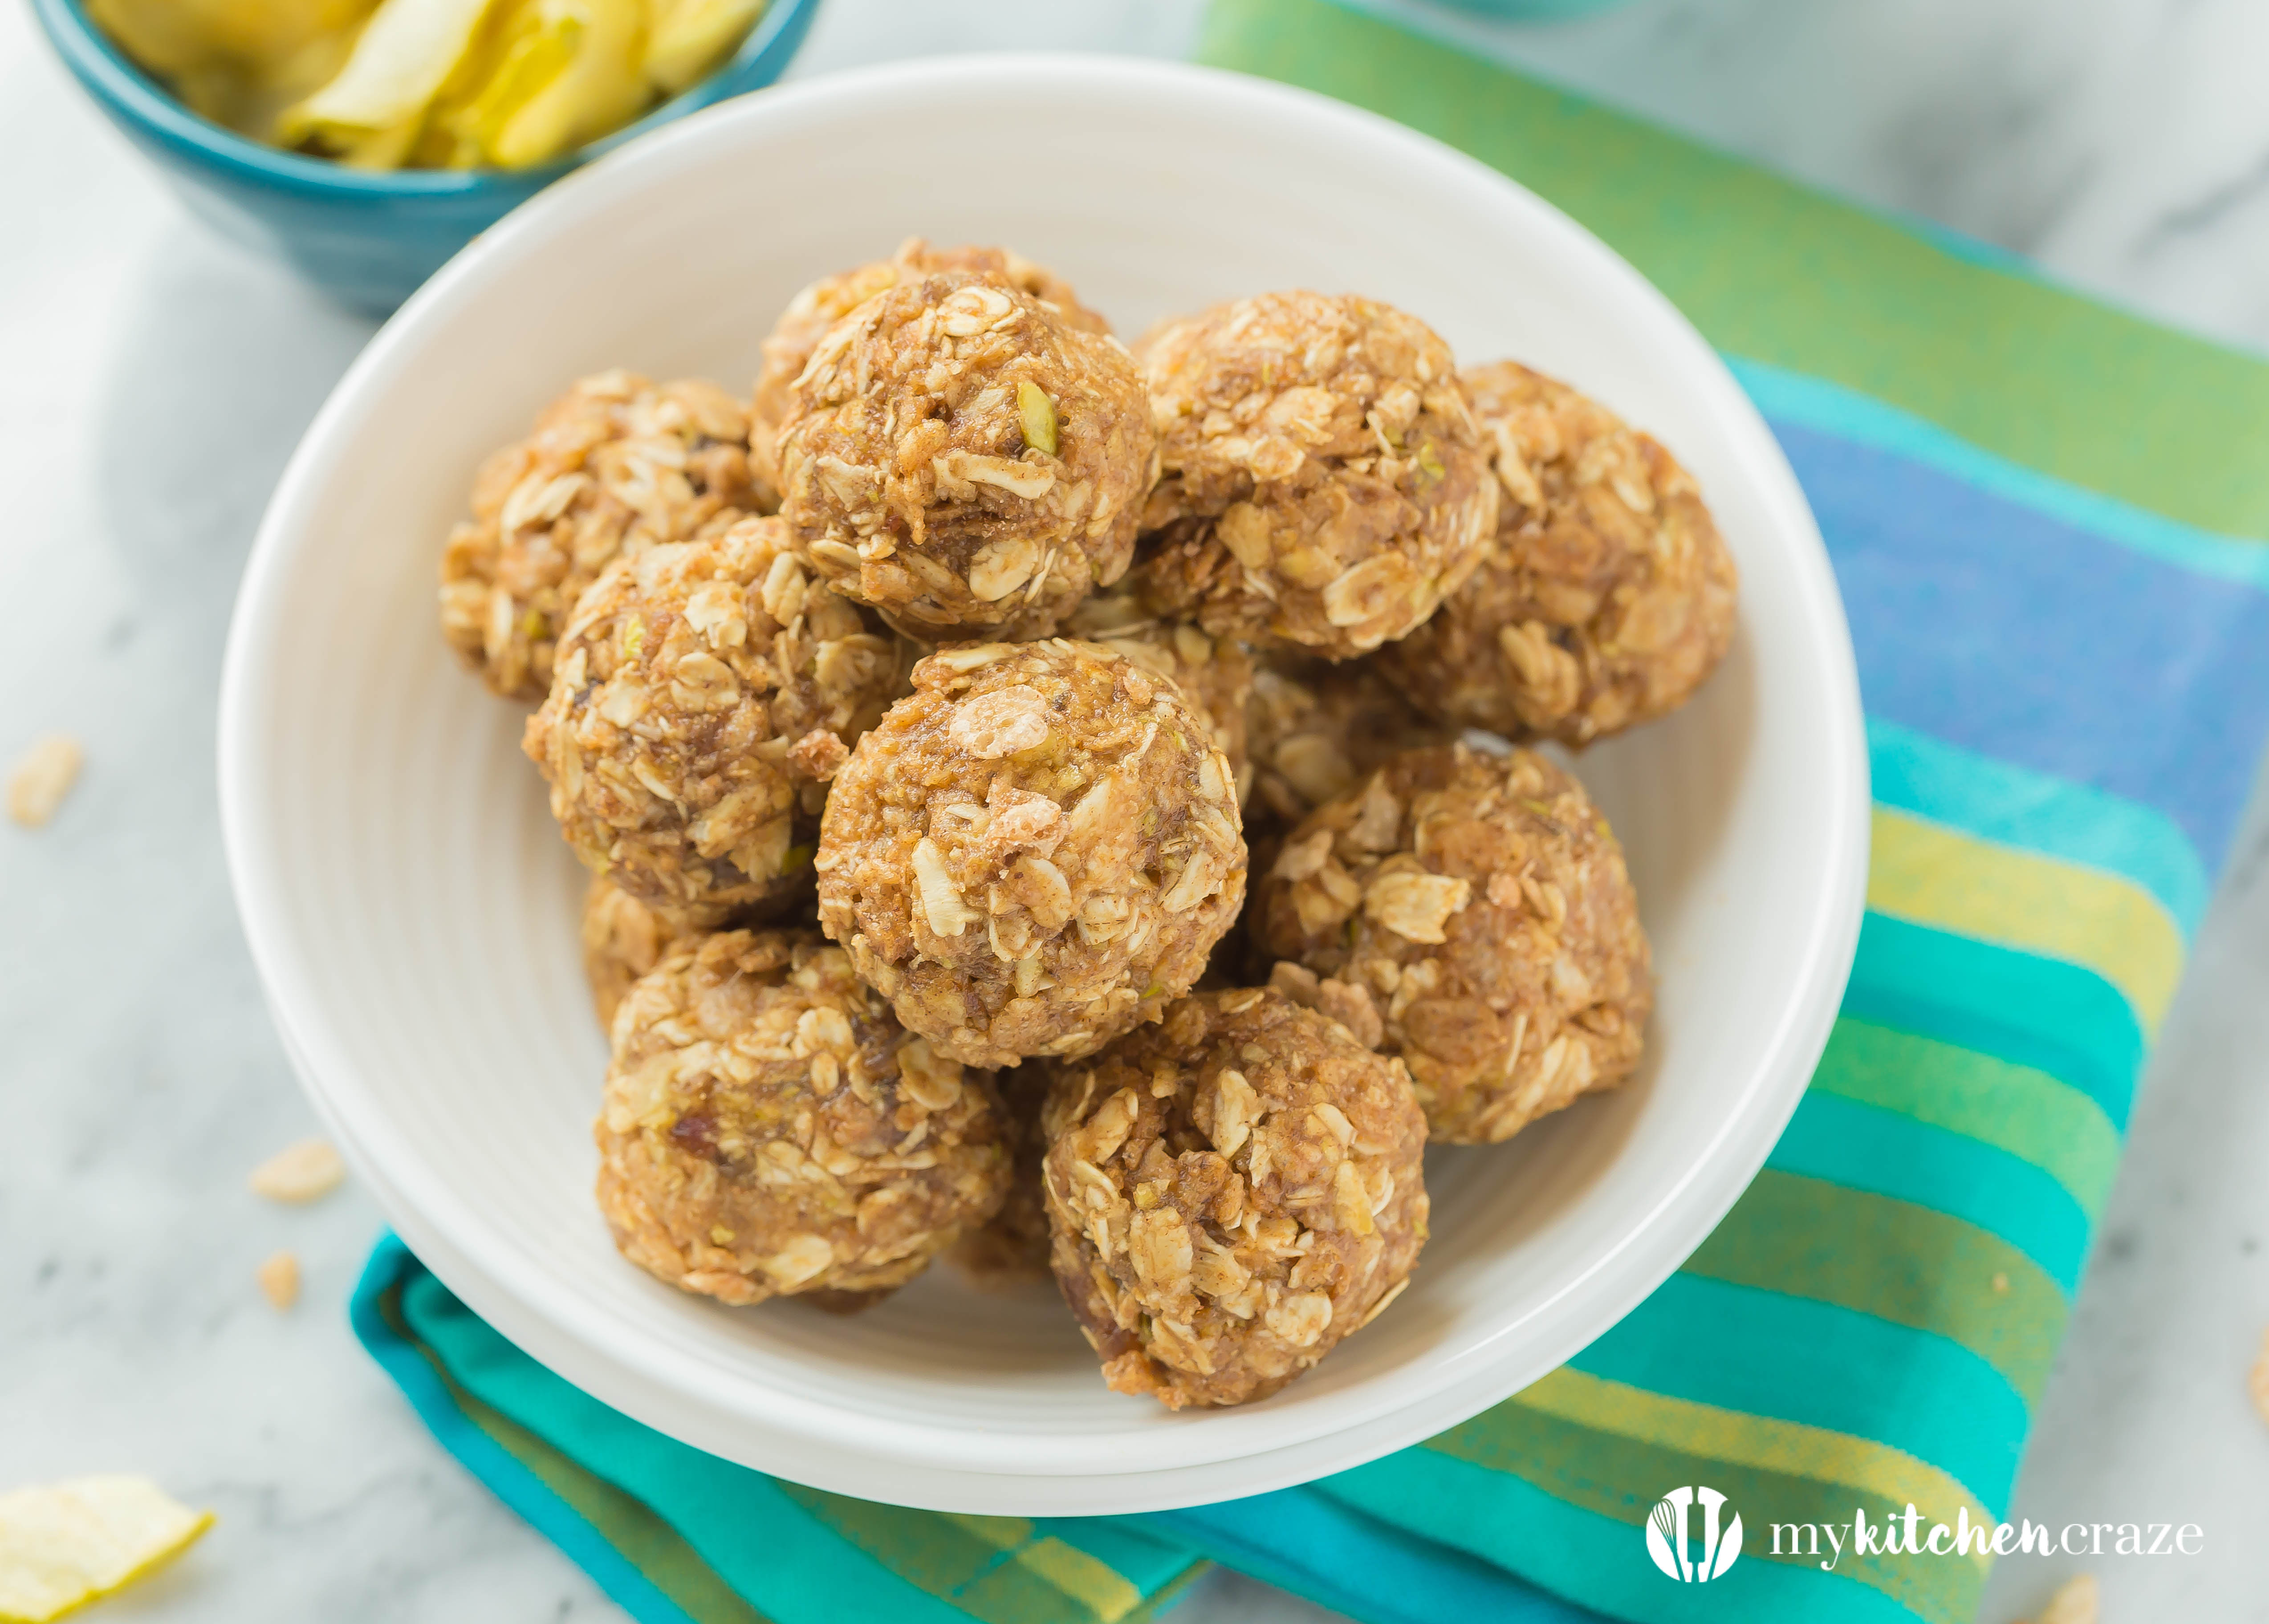 Apple & Dates Snack Bites ~ Packed with apples, dates, Cinnamon Pebbles, oats, and spices, these bite-sized snacks are delicious and will boost your energy to get you through the day.